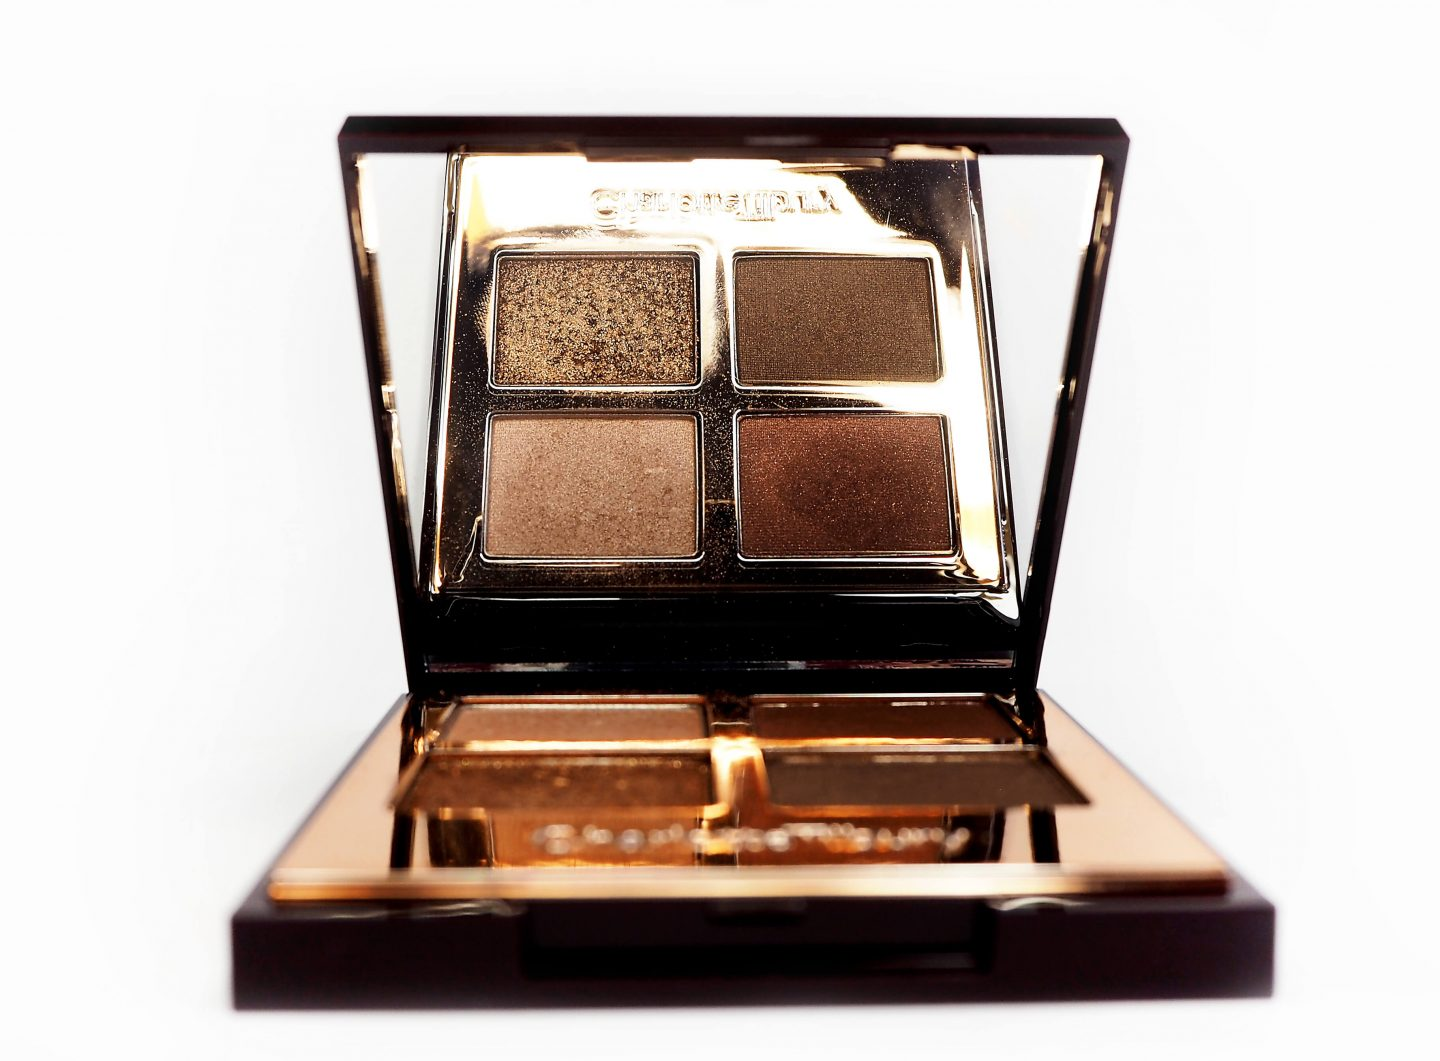 Charlotte Tilbury The Dolce Vita Luxury Palette